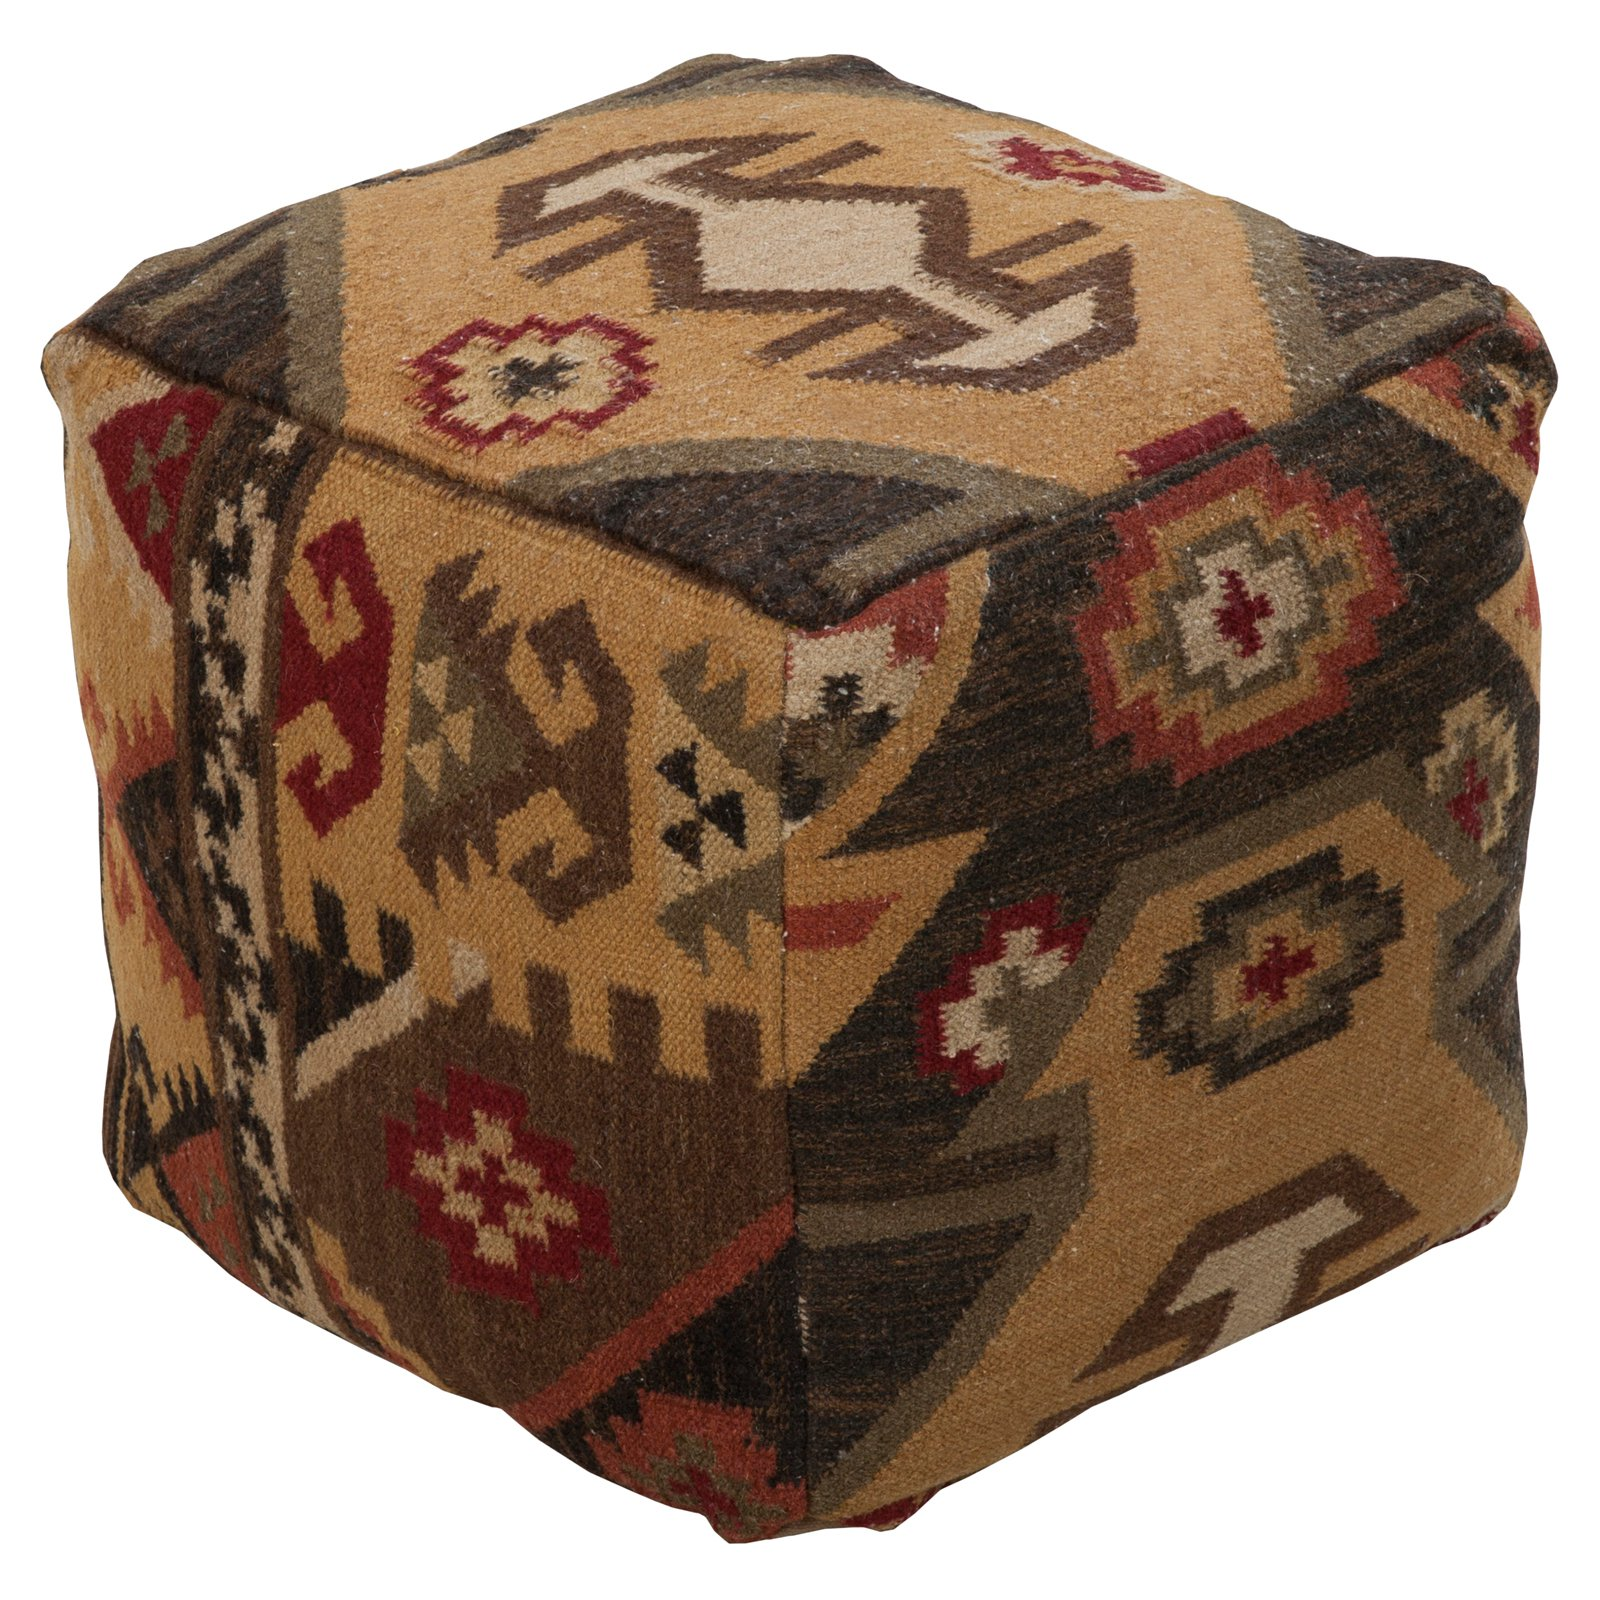 Surya 18 in. Cube Wool Pouf Dark Goldenrod by Surya